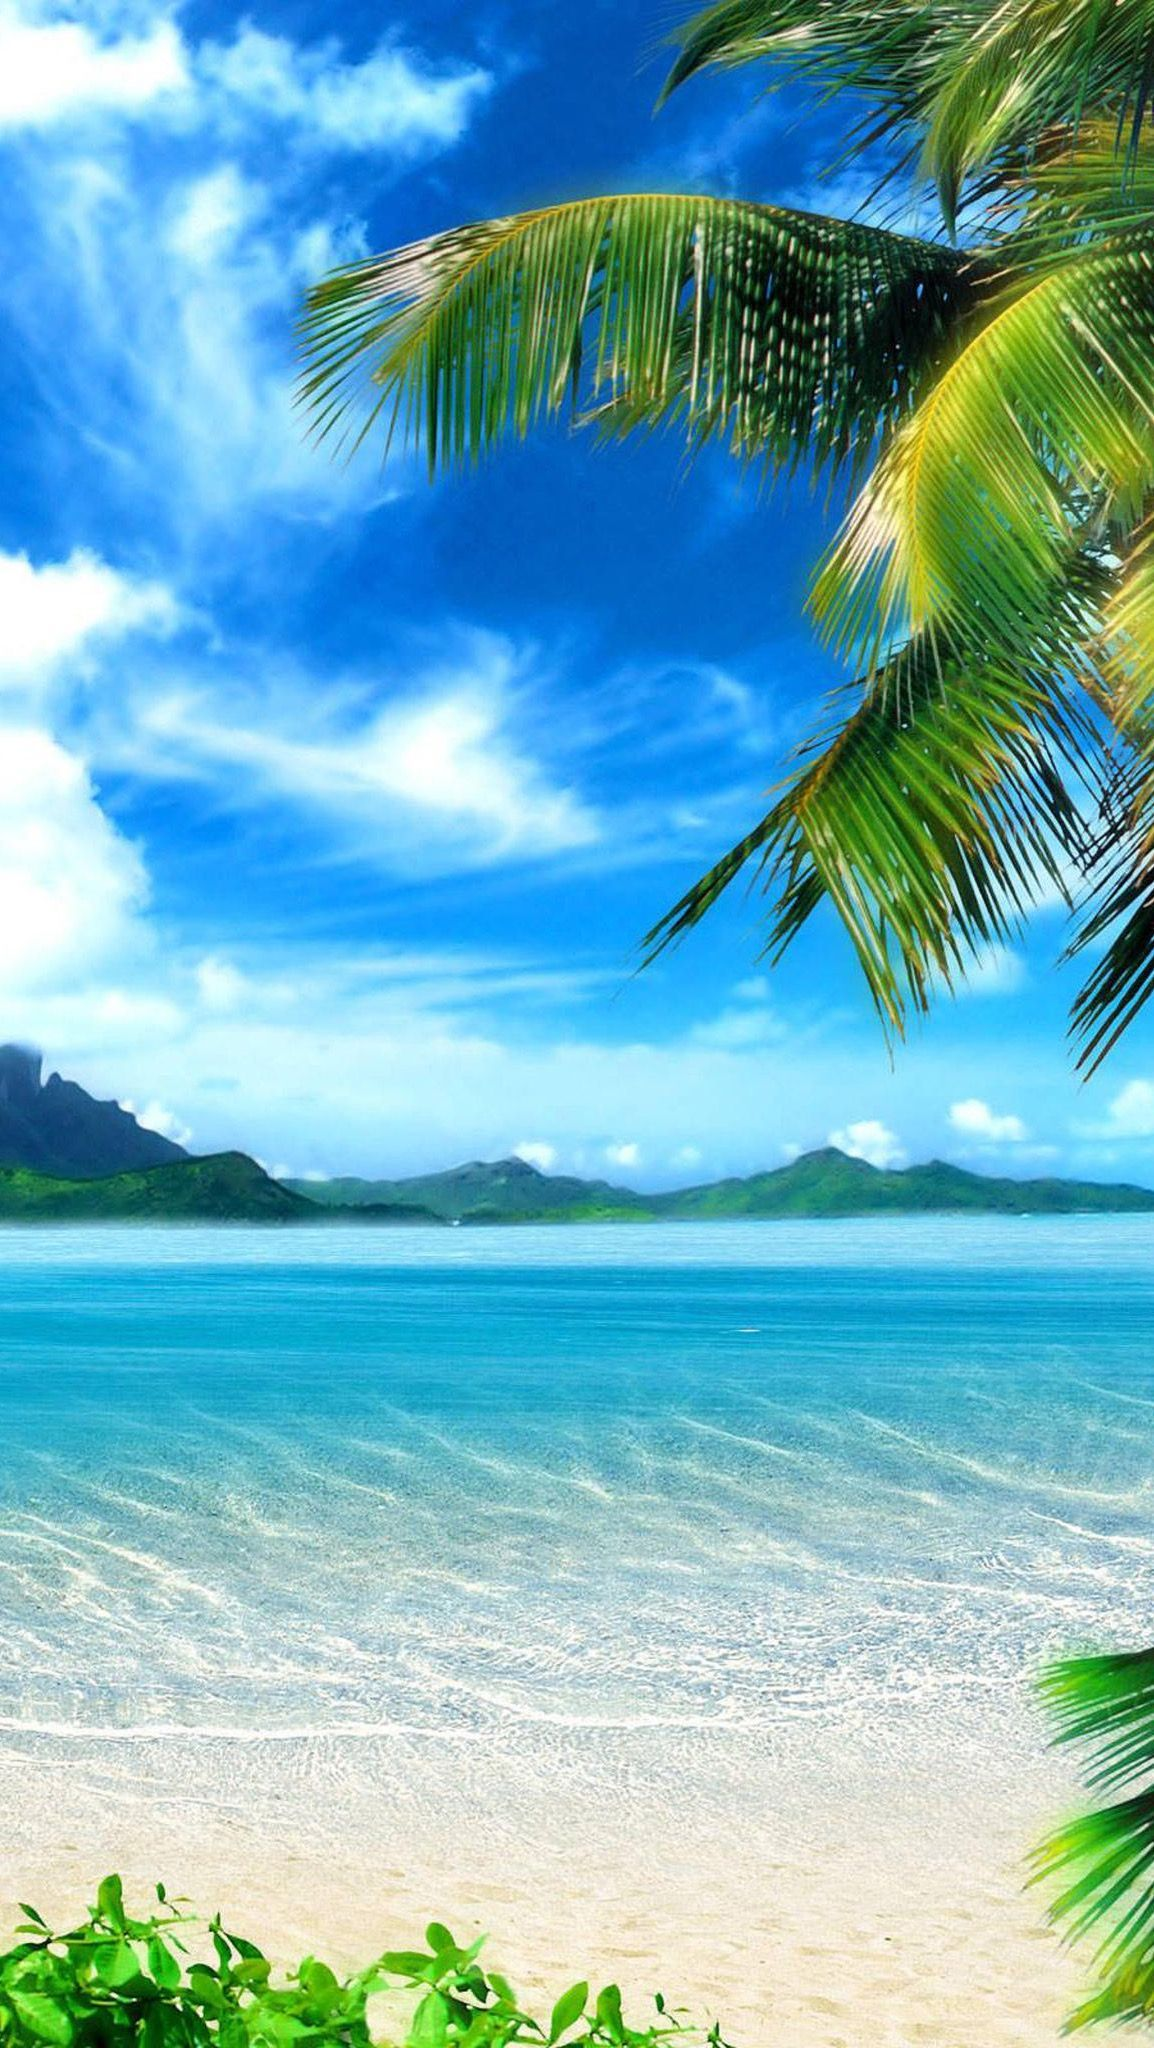 Beach Tropical Iphone Wallpapers Top Free Beach Tropical Iphone Backgrounds Wallpaperaccess